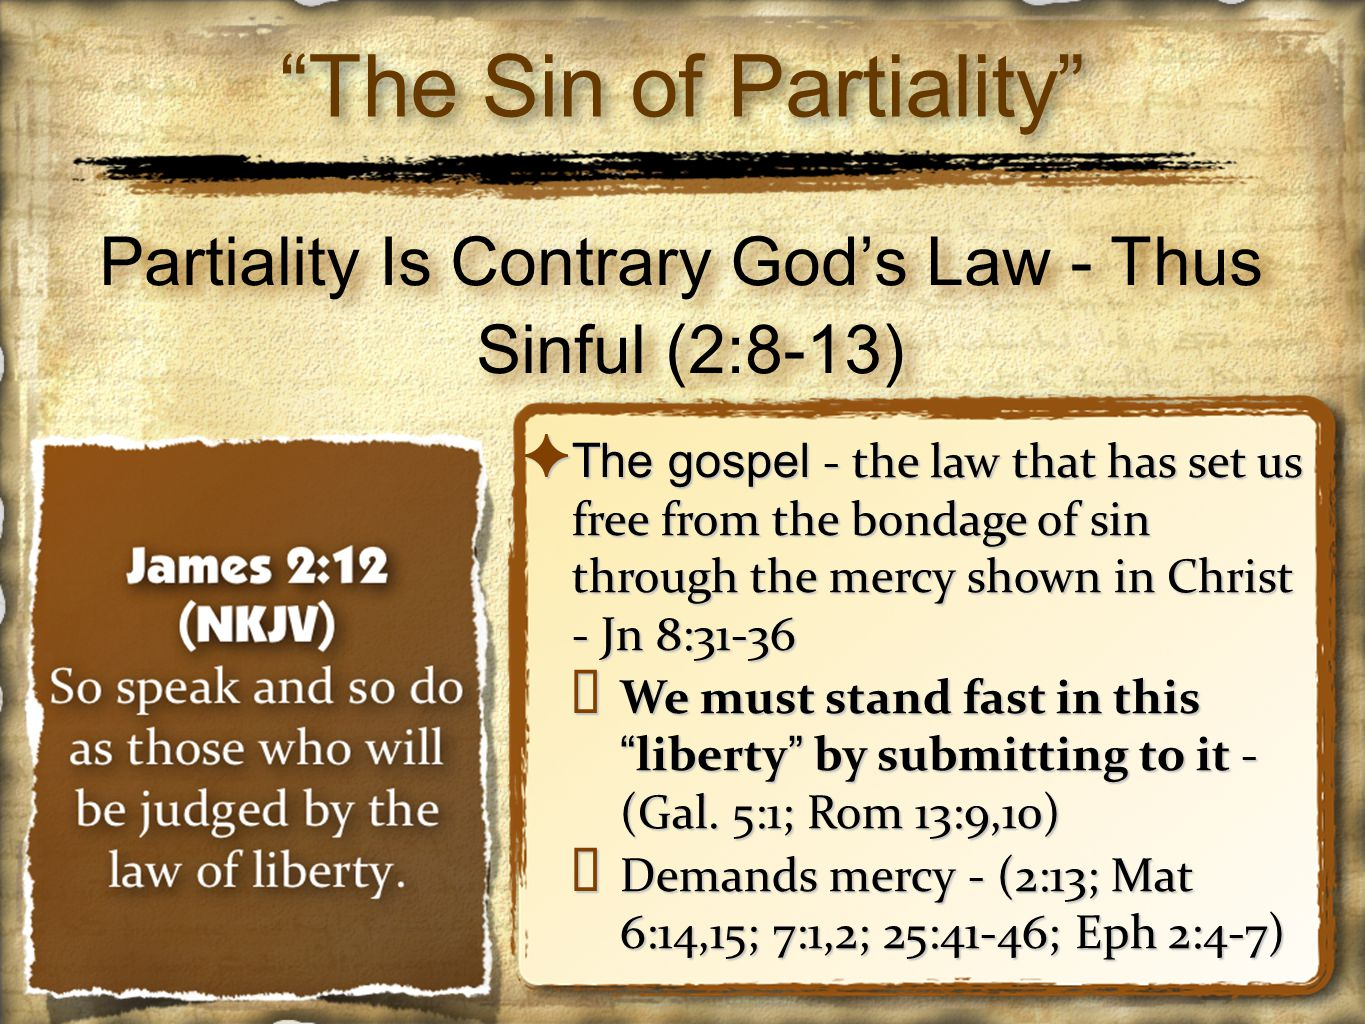 Partiality Is Contrary God's Law - Thus Sinful (2:8-13) ✦ The gospel - the law that has set us free from the bondage of sin through the mercy shown in Christ - Jn 8:31-36 ✴ We must stand fast in this liberty by submitting to it - (Gal.